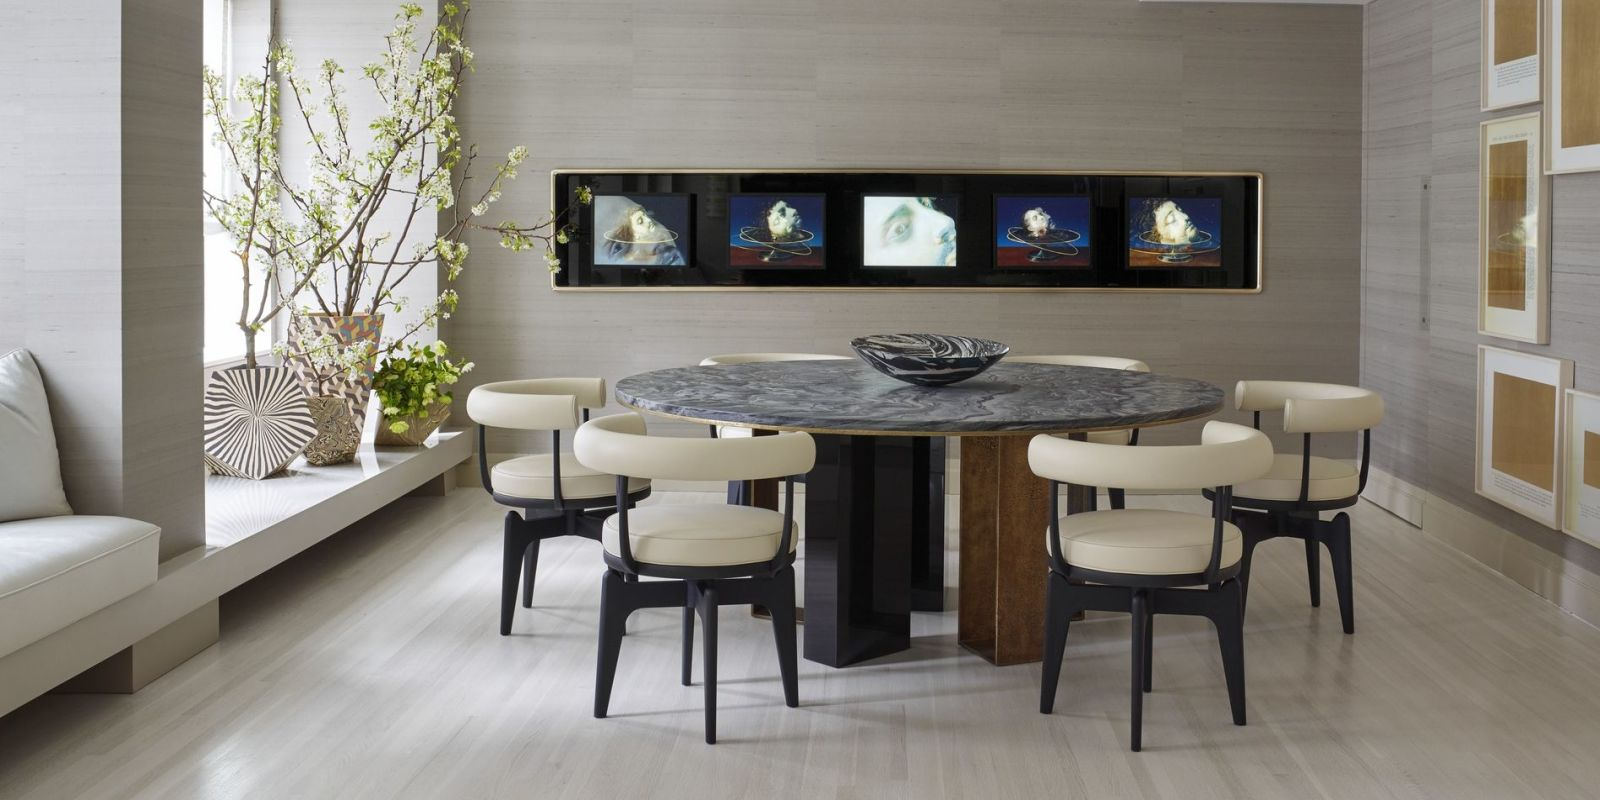 Modern Dining Room Design 25 Modern Dining Room Decorating Ideas Contemporary Dining Room